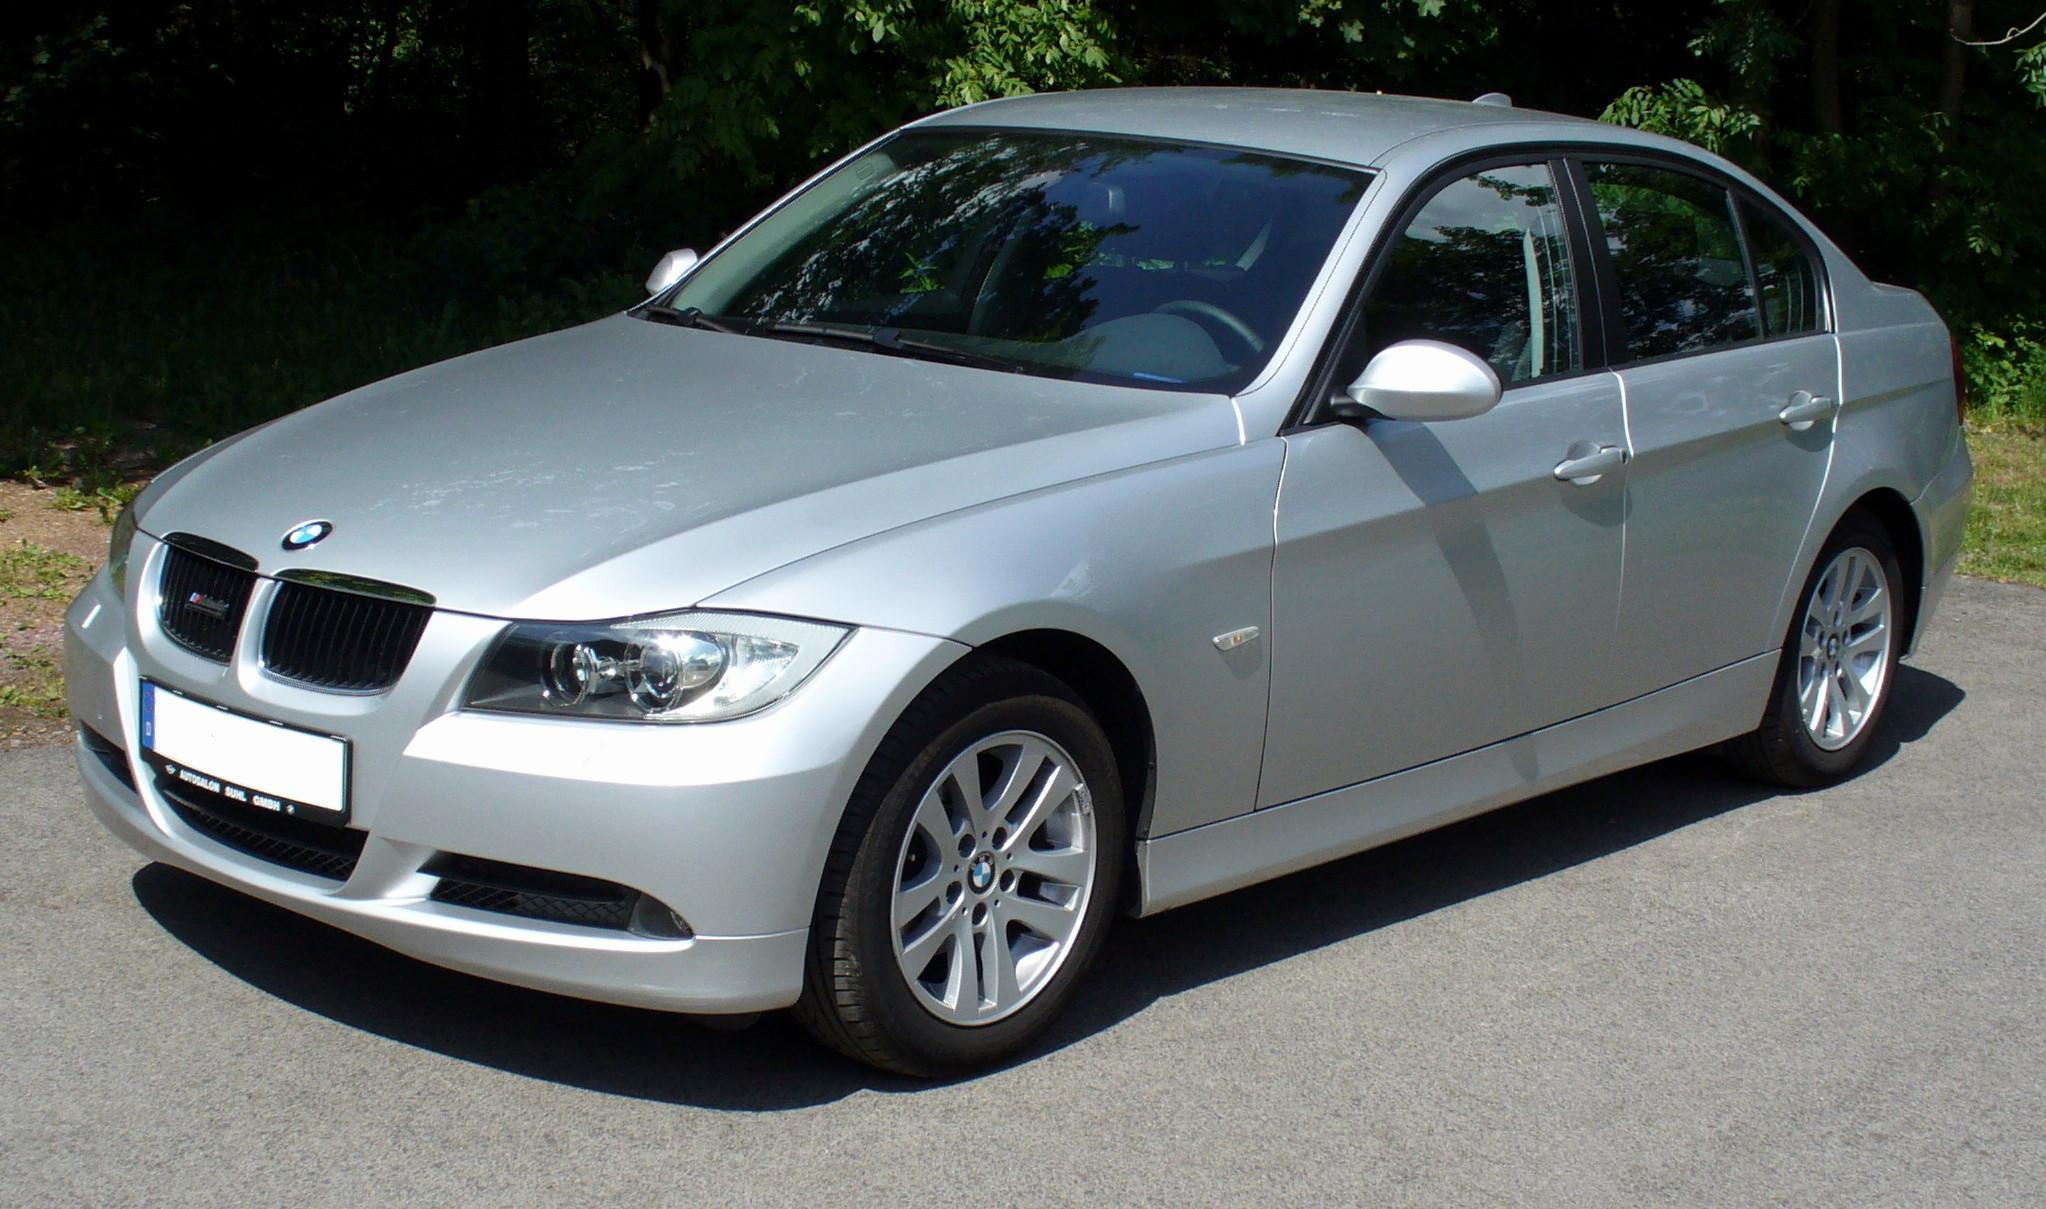 Bmw 316i 2007 Review Amazing Pictures And Images Look